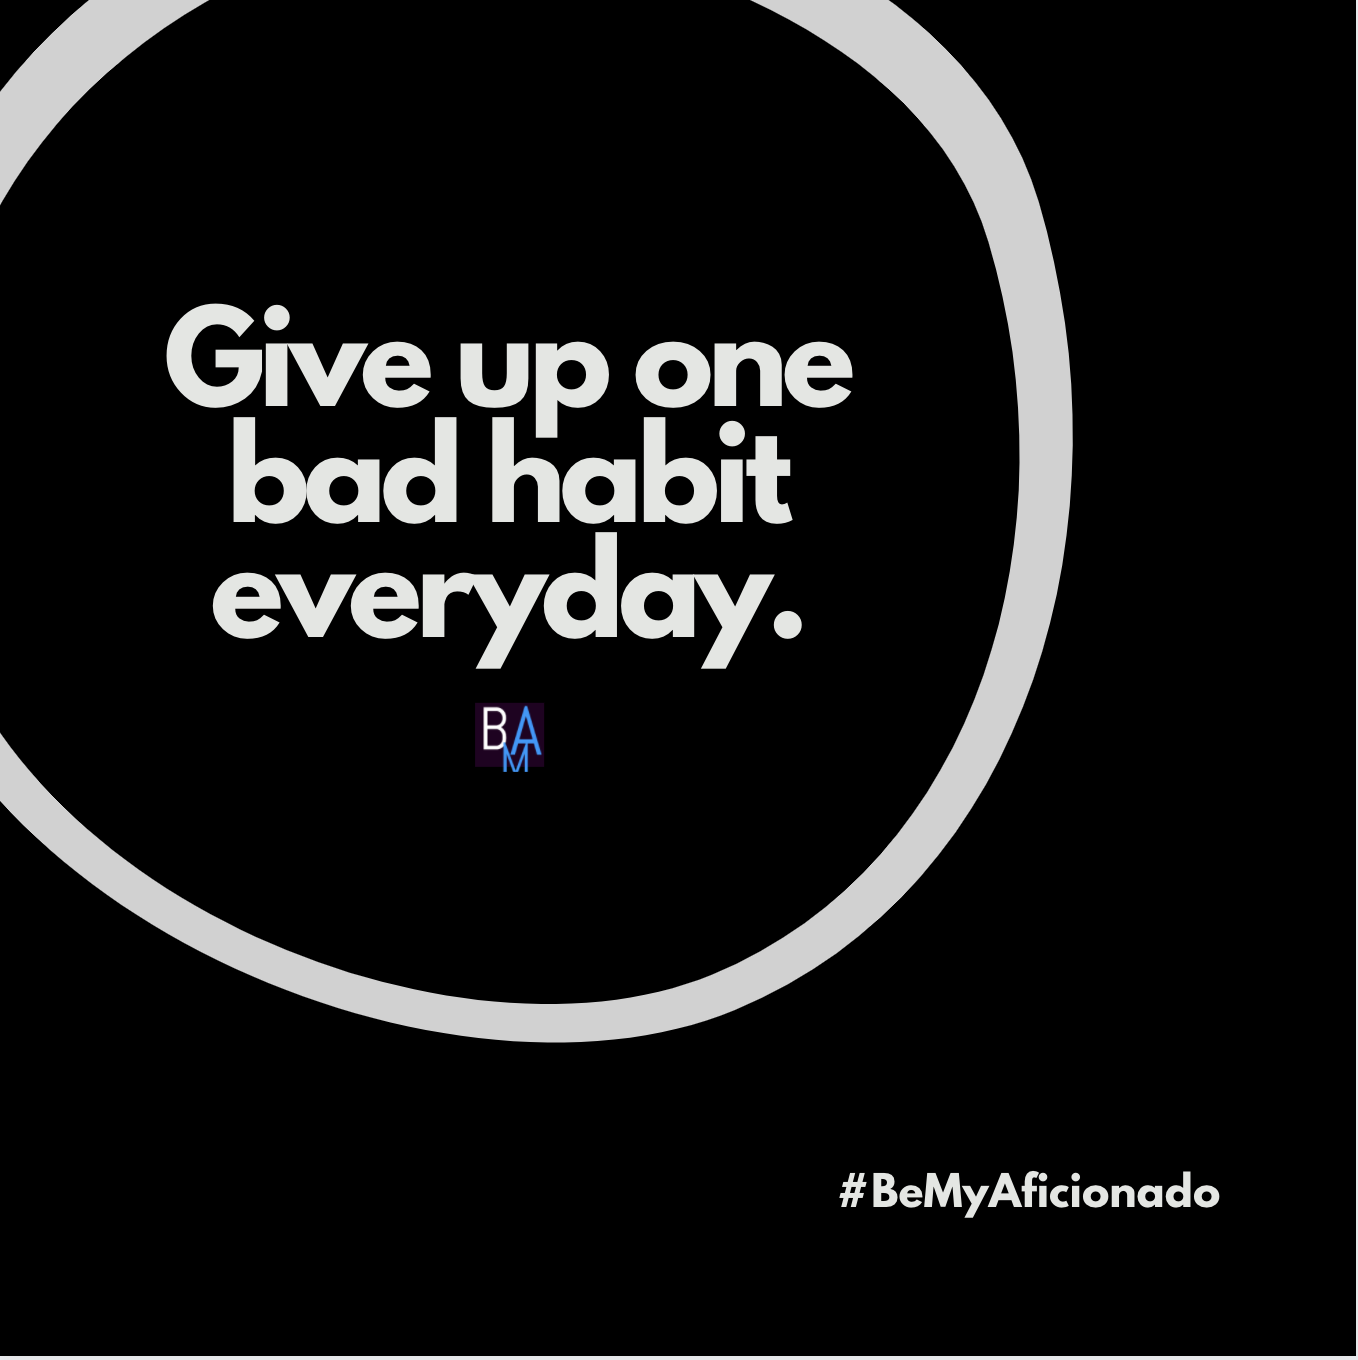 Give up one bad habit everyday.